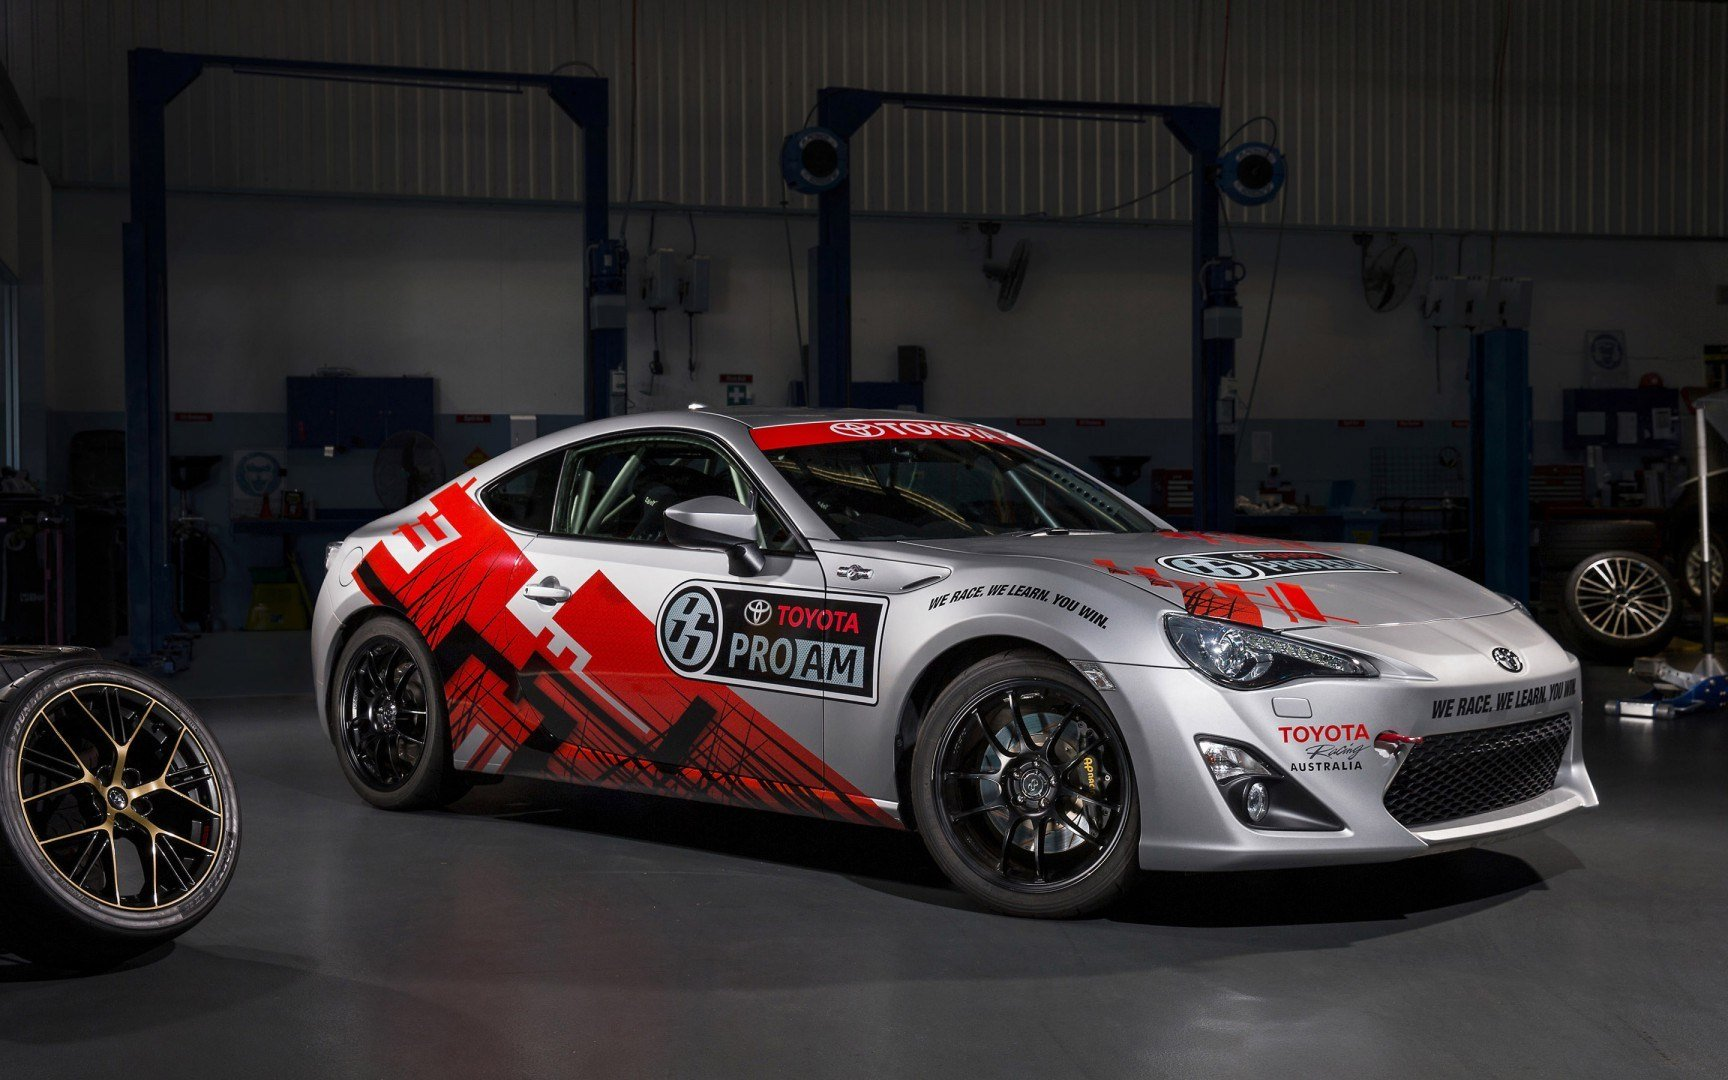 New 2015 Toyota 86 Pro Am Car Hd Wallpaper » Fullhdwpp Full On This Month